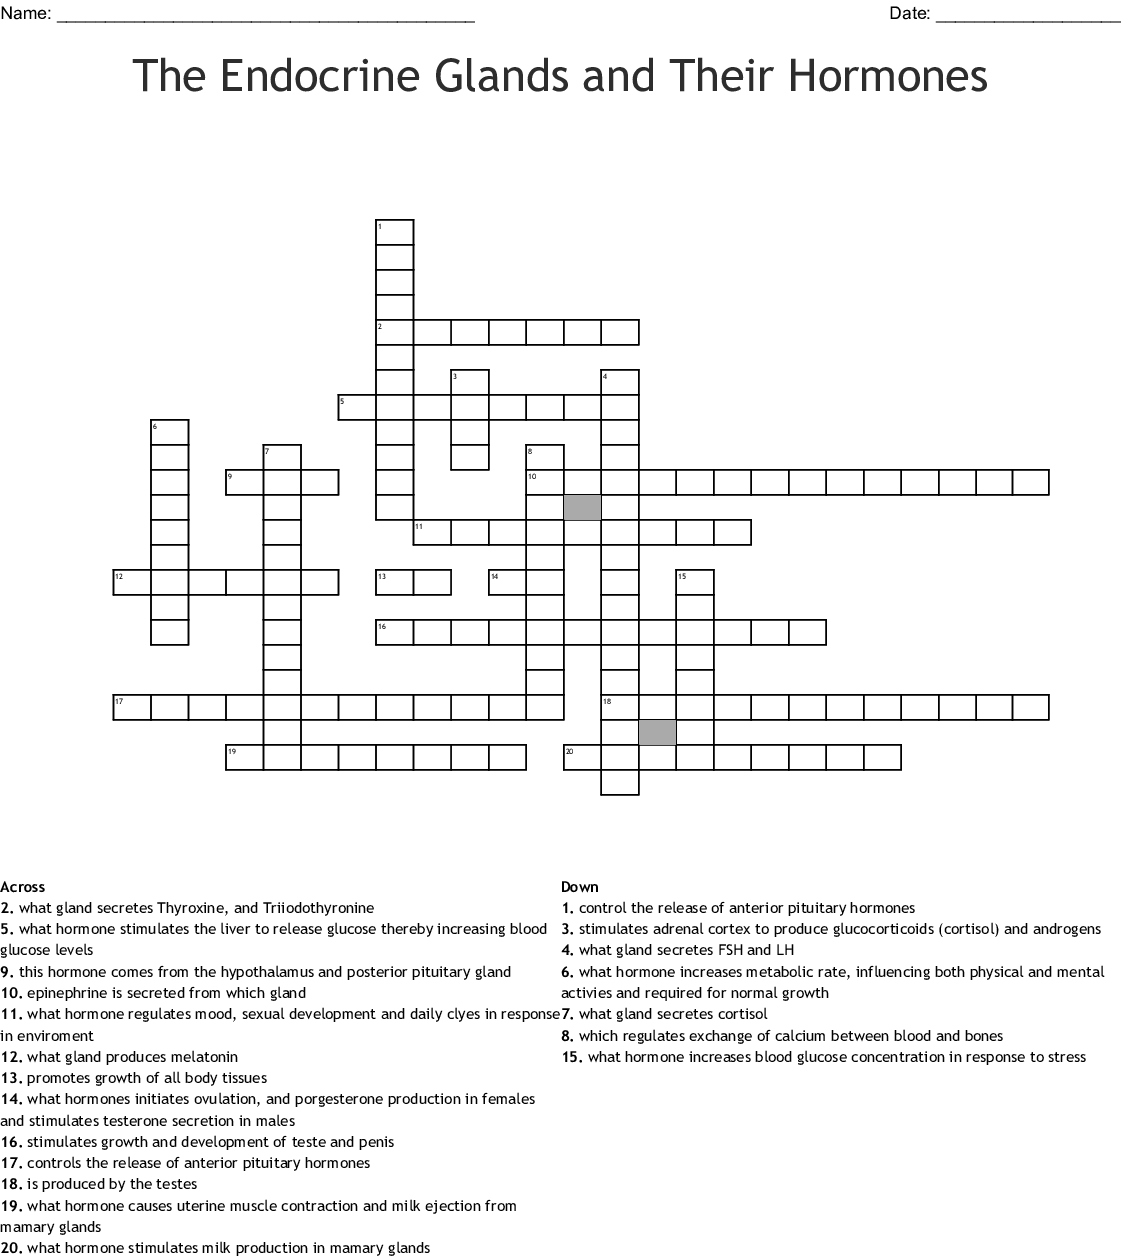 The Endocrine Glands And Their Hormones Crossword